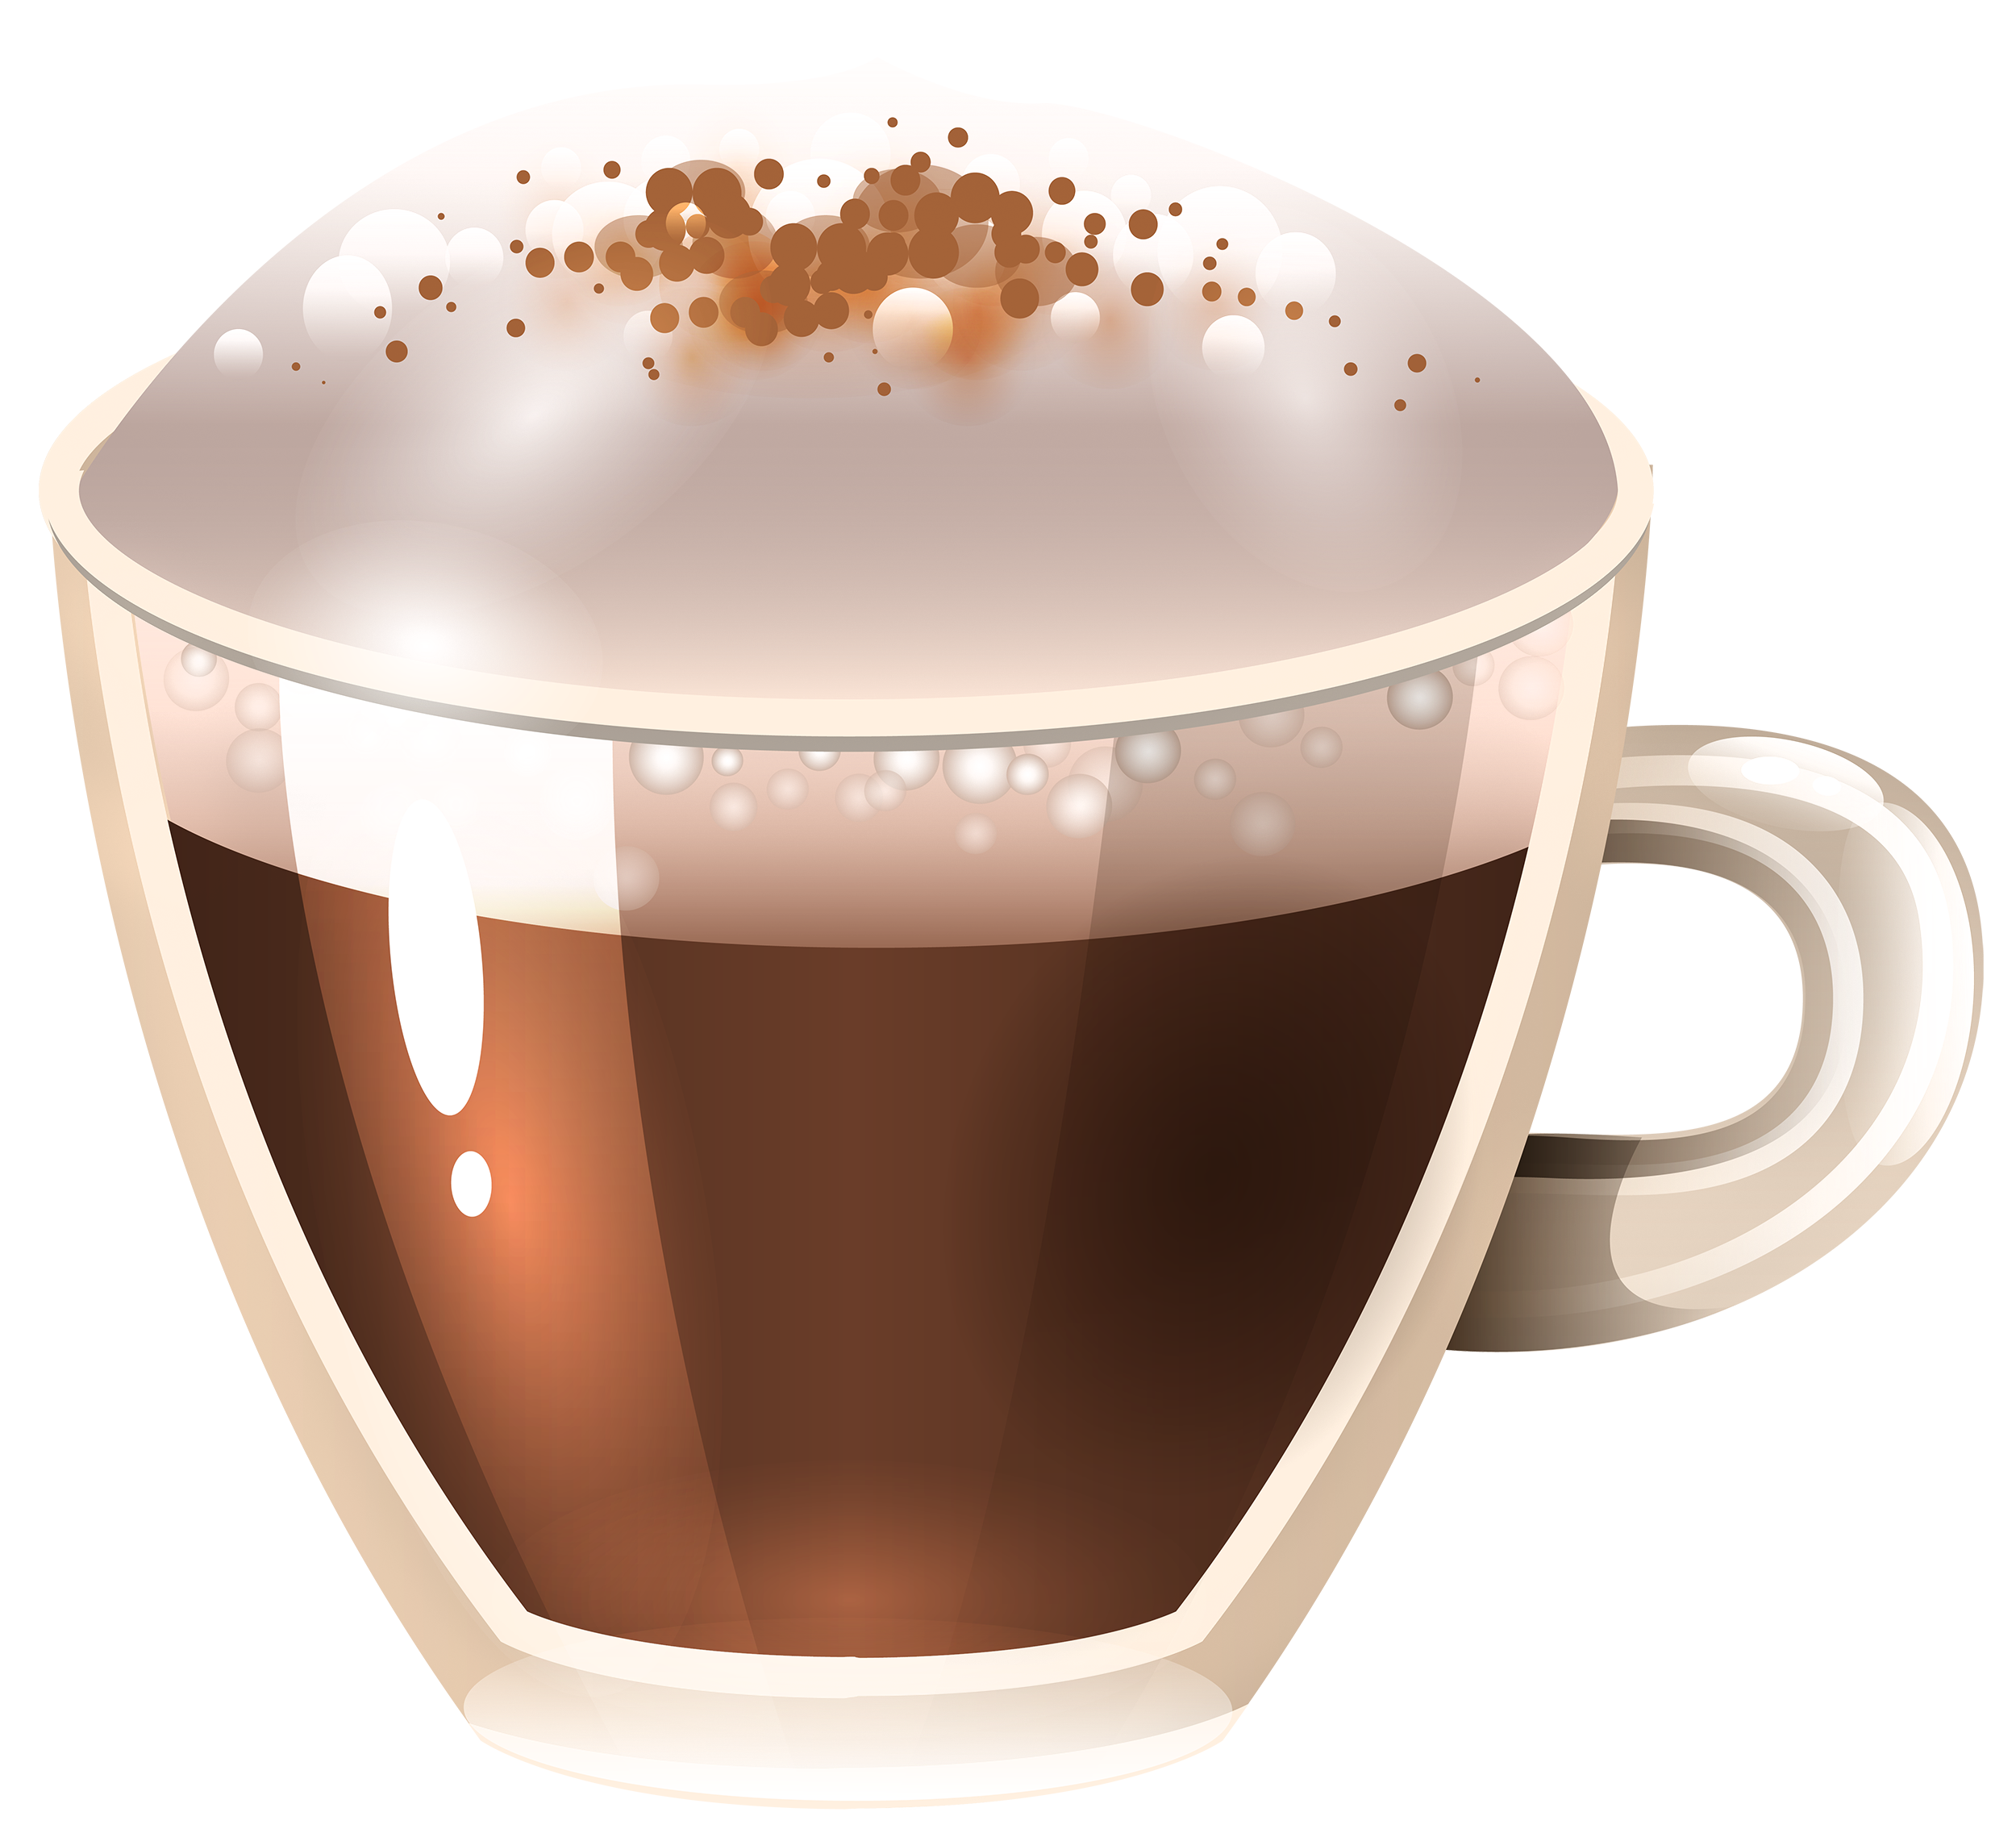 Cup png image gallery. Coffee clipart spring